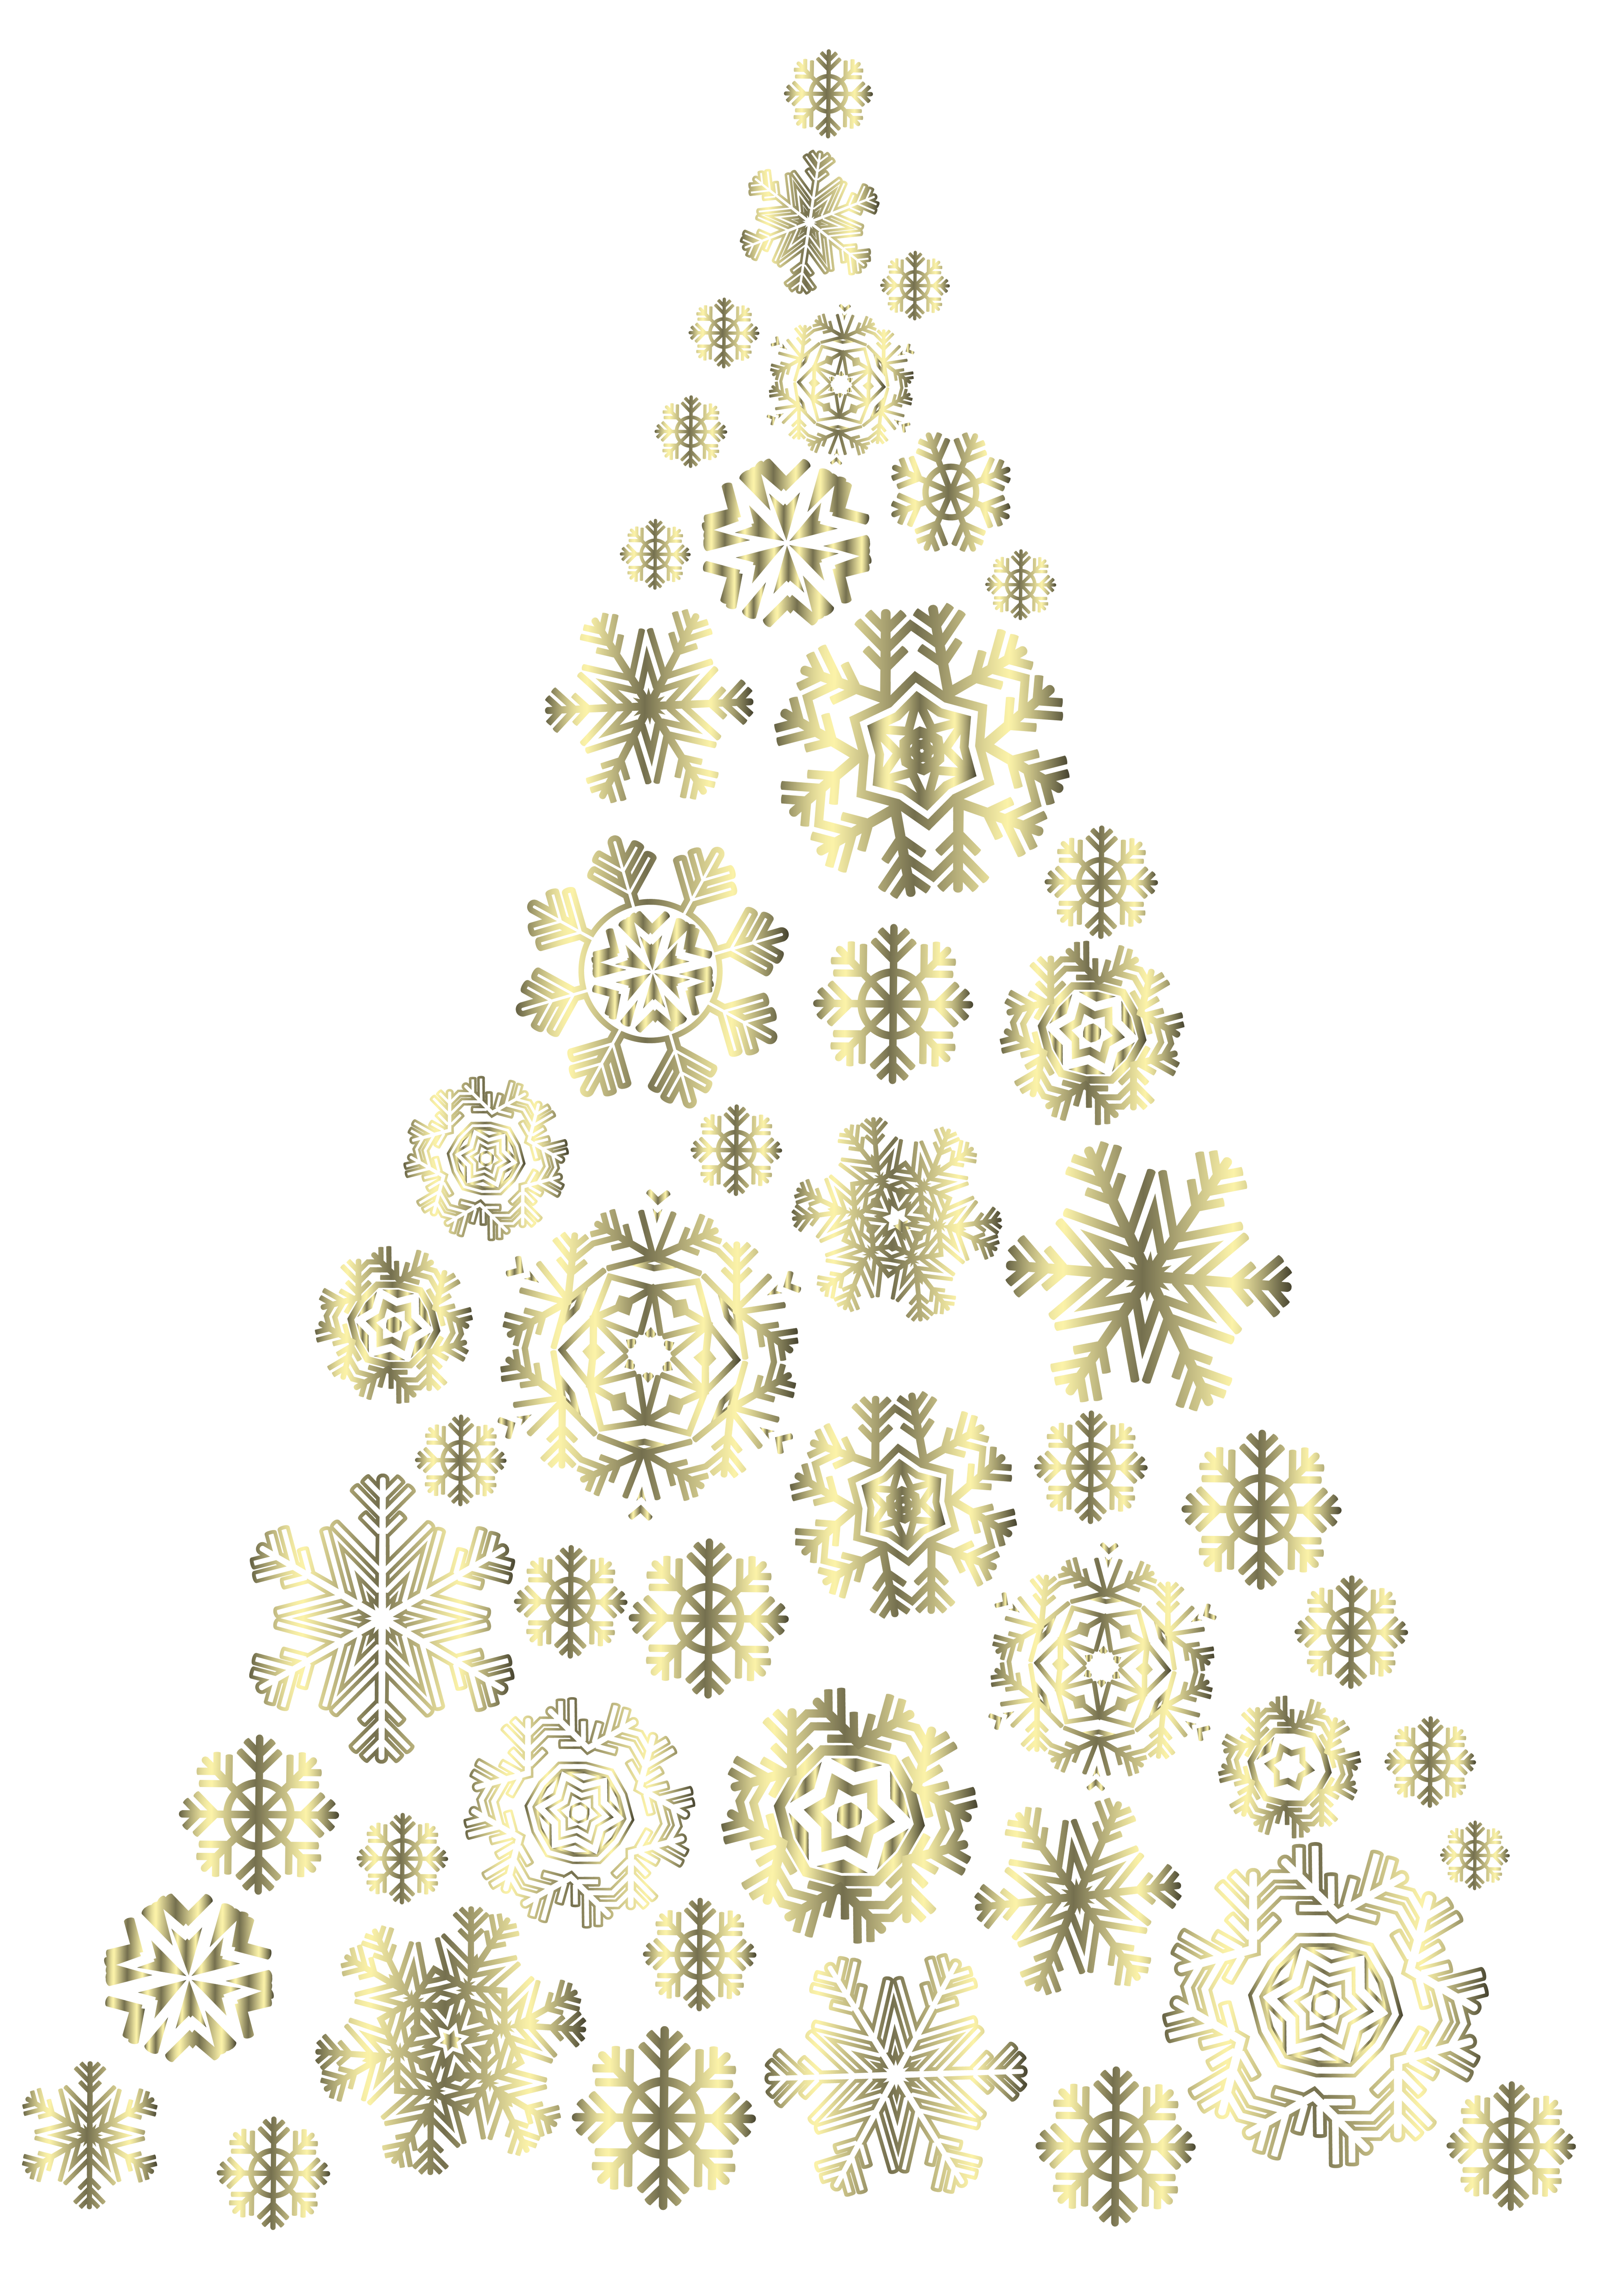 Christmas snowflakes png. Golden tree image gallery